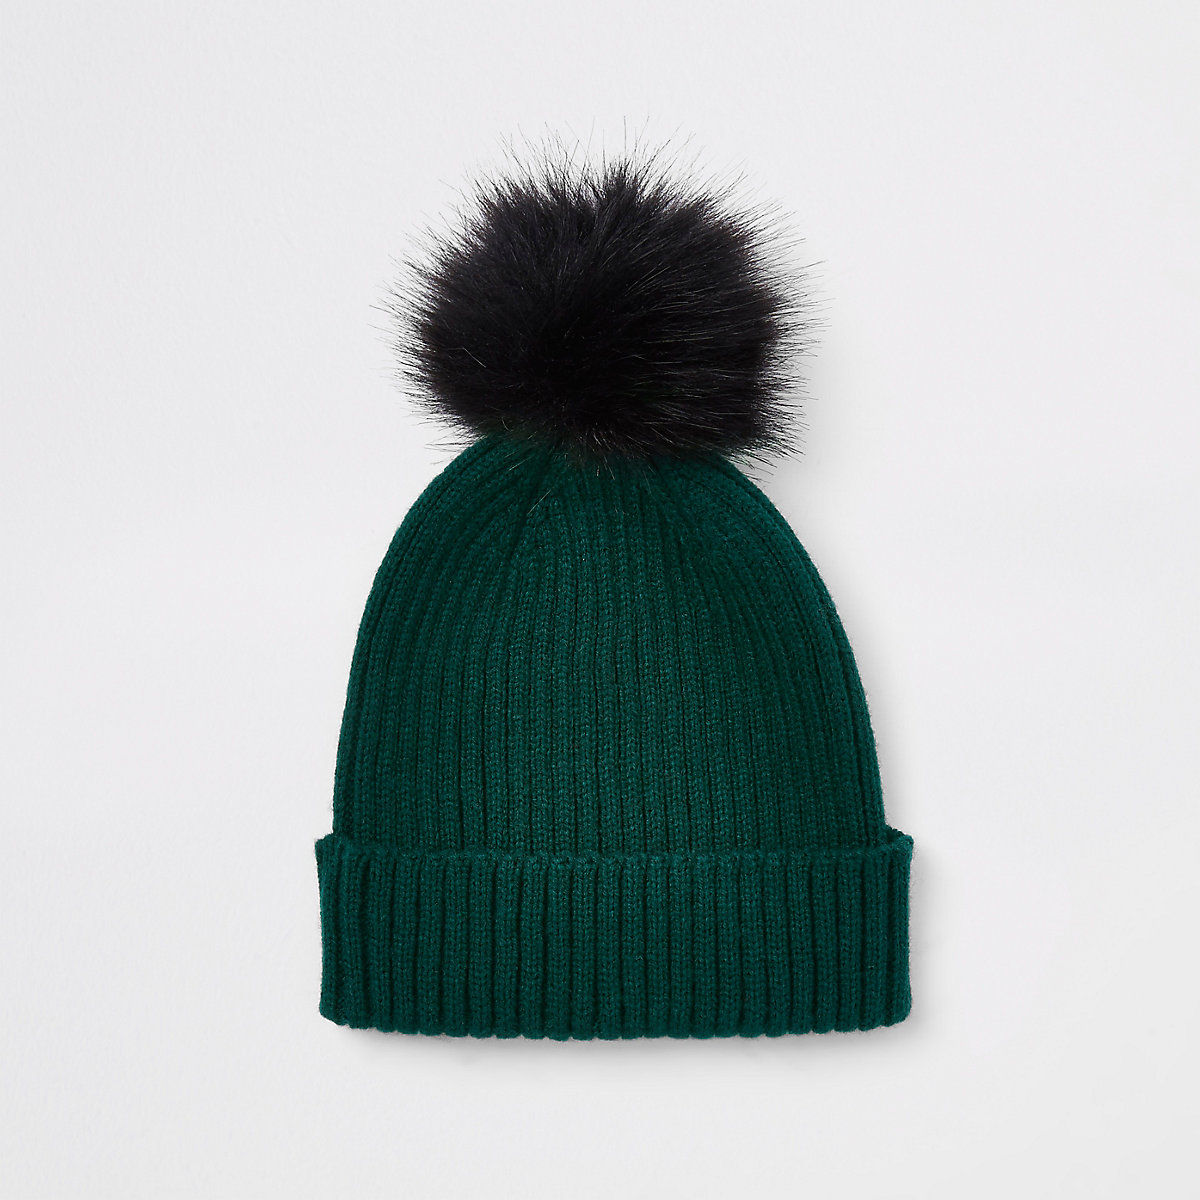 Boys green ribbed knit faux fur beanie hat - Hats - Accessories - boys c7b966300bd